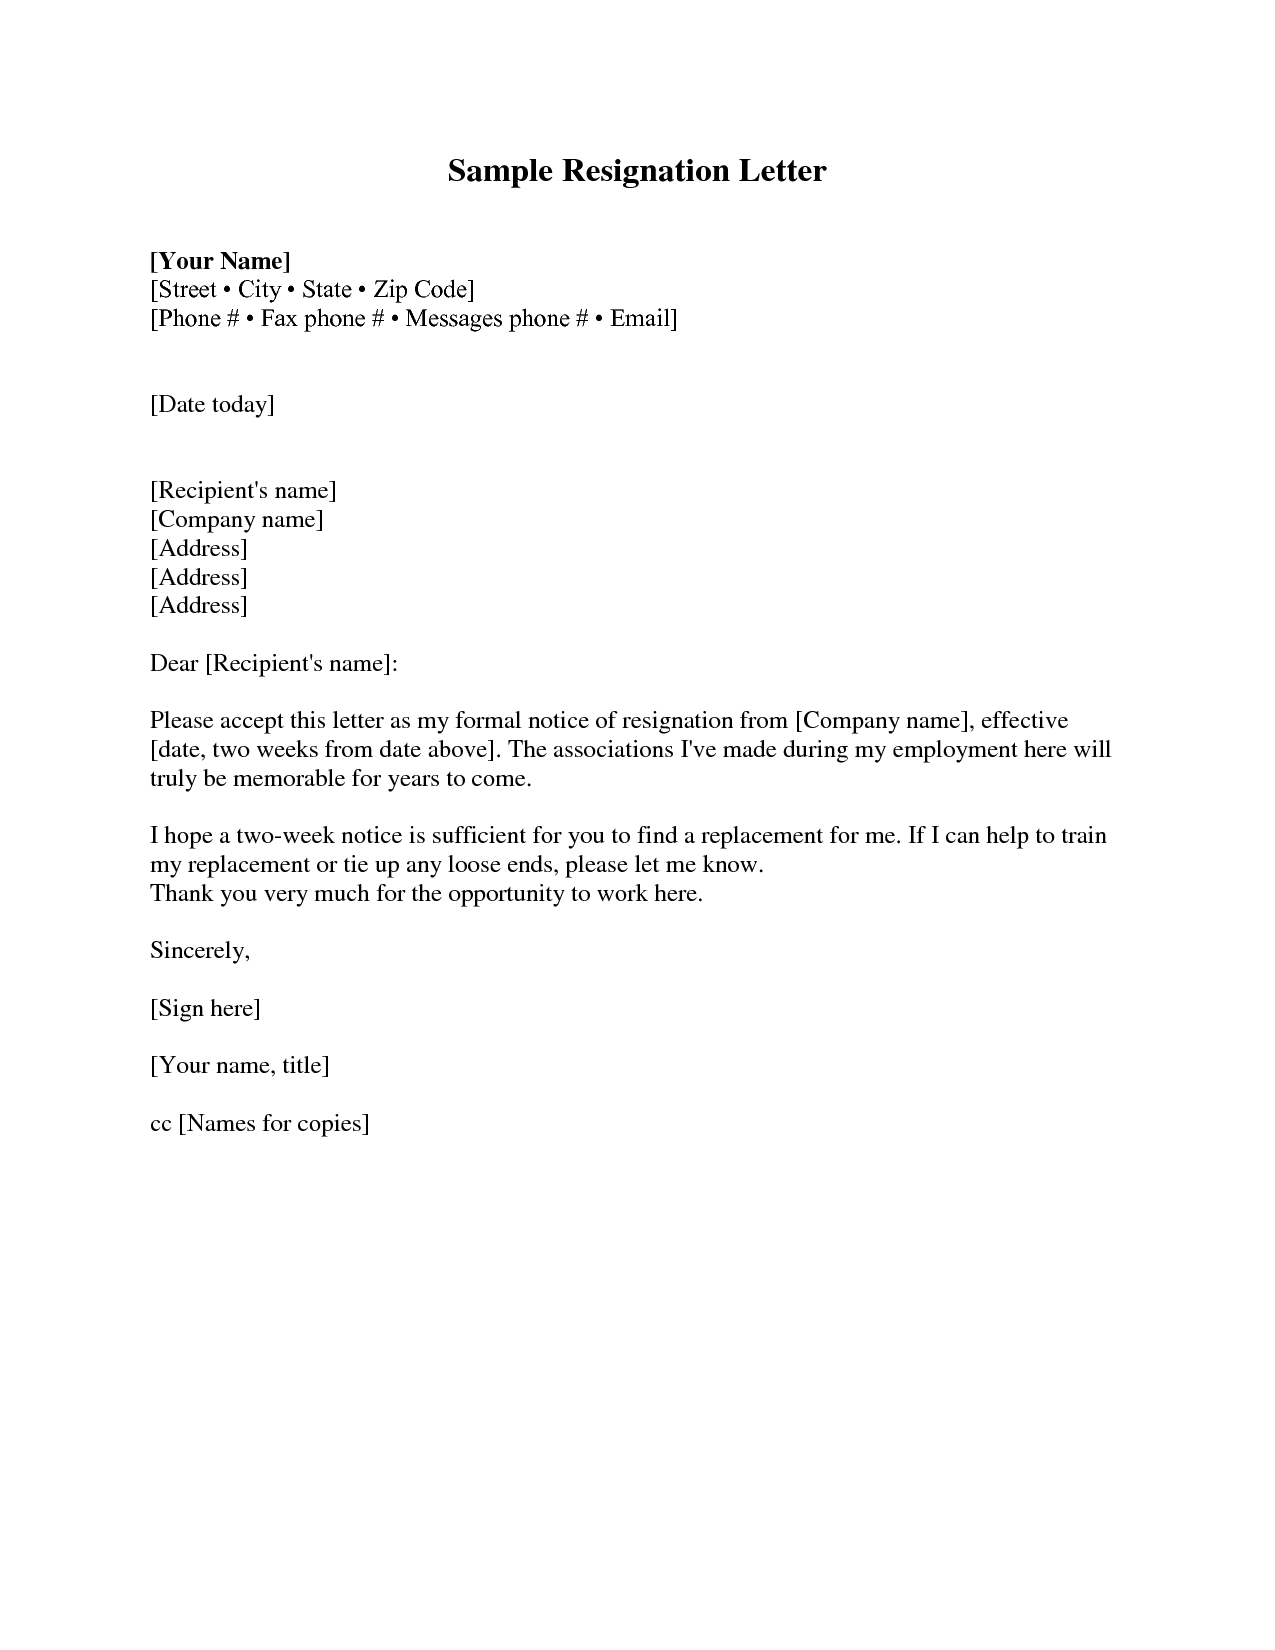 Free Resignation Letter Template Word - Resignation Letter Sample 2 Weeks Notice Free2img